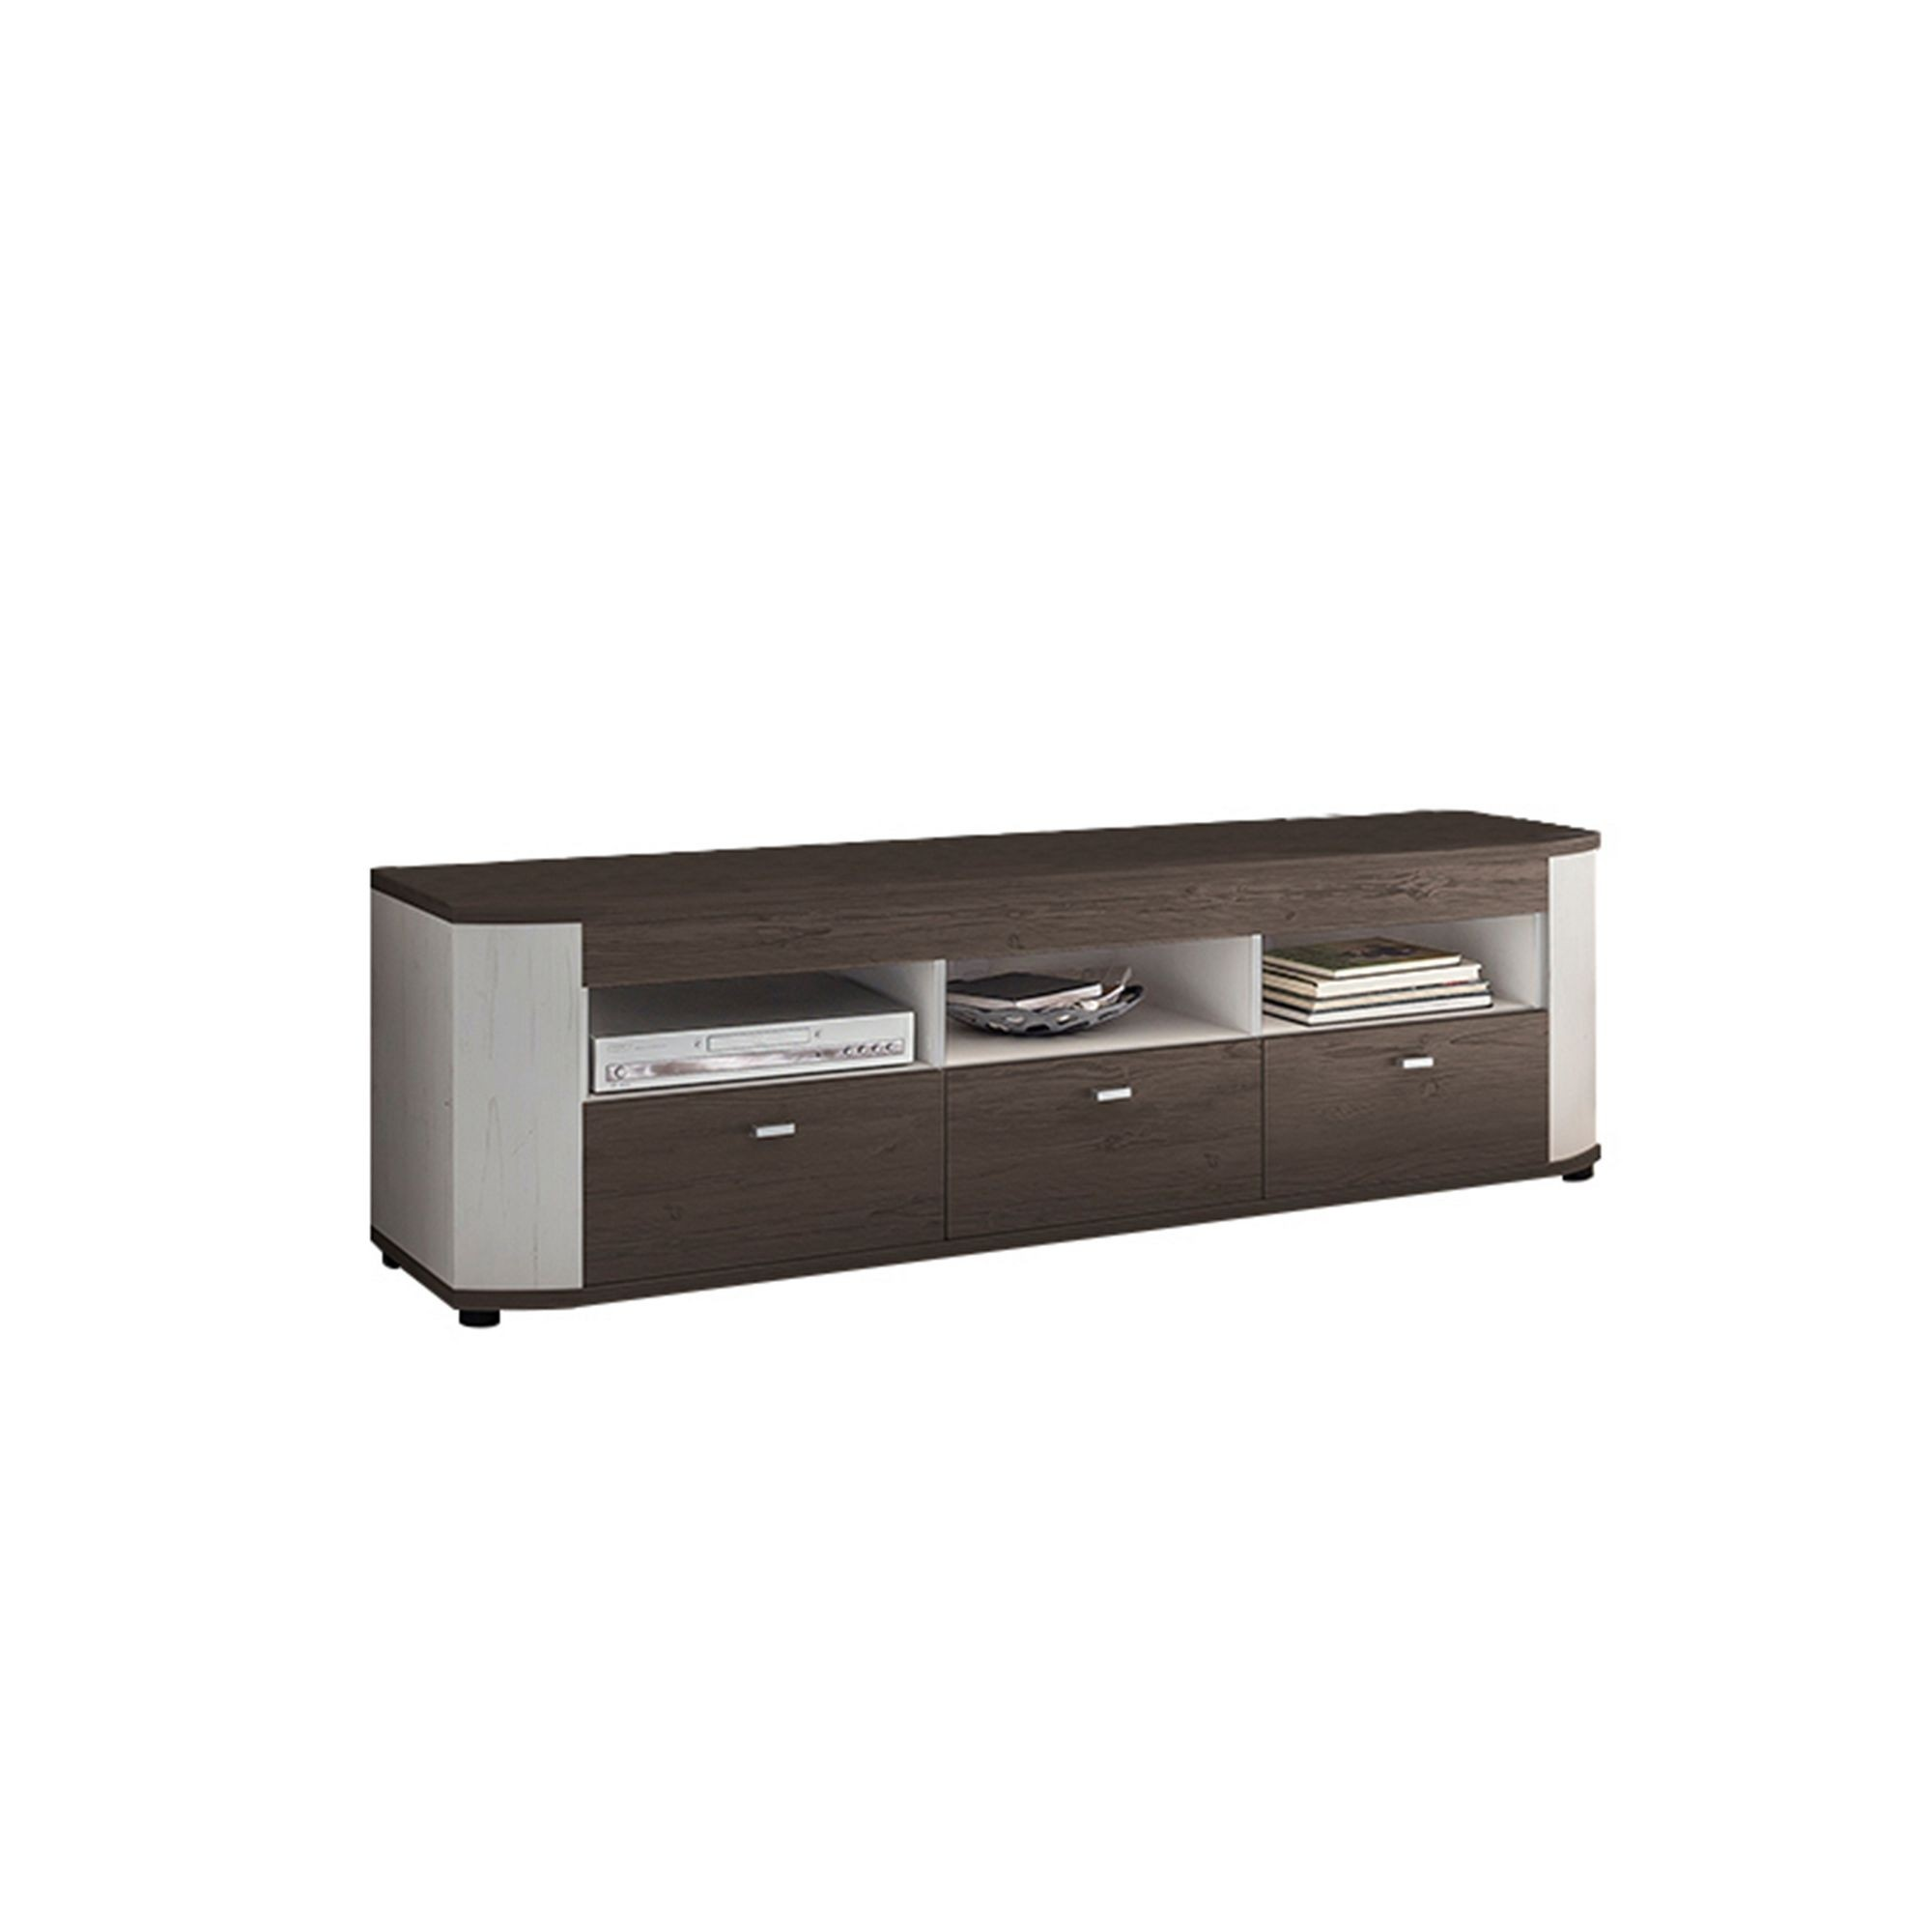 Tv Sideboard Kiefer Thies Seven Tv Lowboard Anderson Kiefer Weiß Riviera Eiche